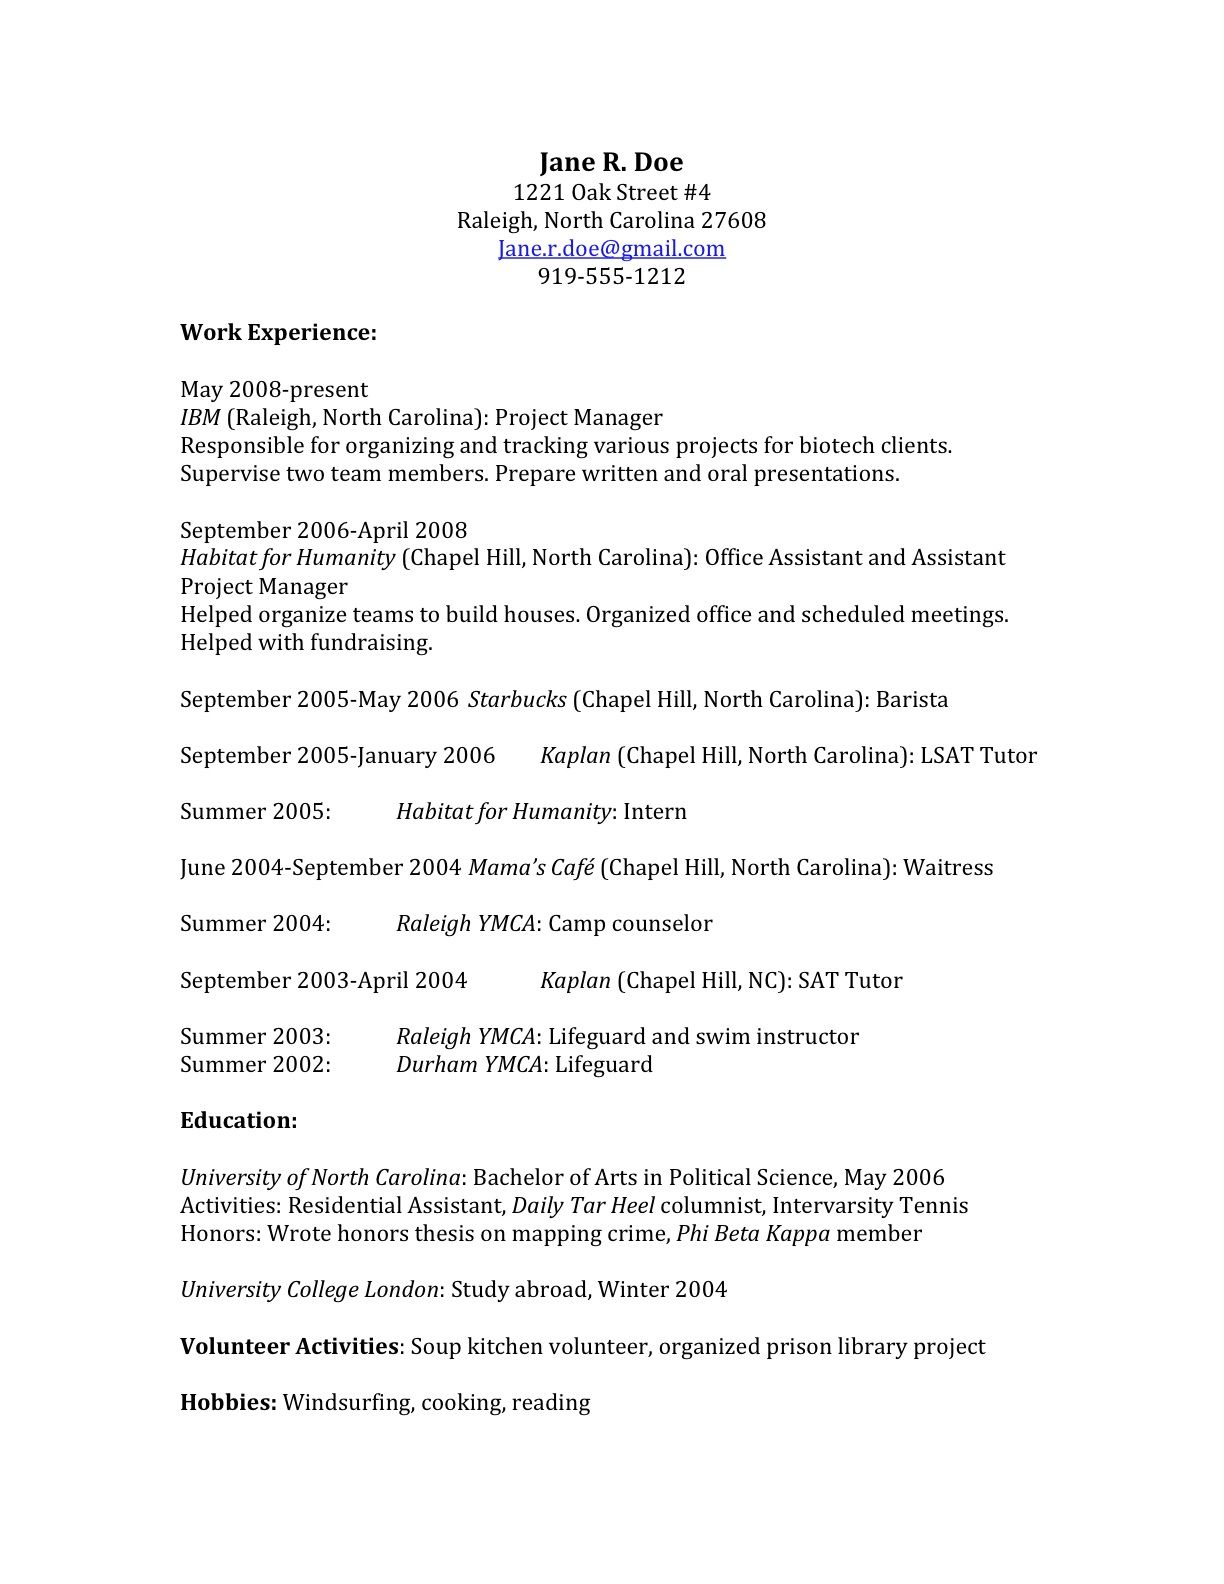 Resume How To Write An Application Letter For Volunteering Format 1584 1224px Volunteer Resume Letter Sample Format And Free